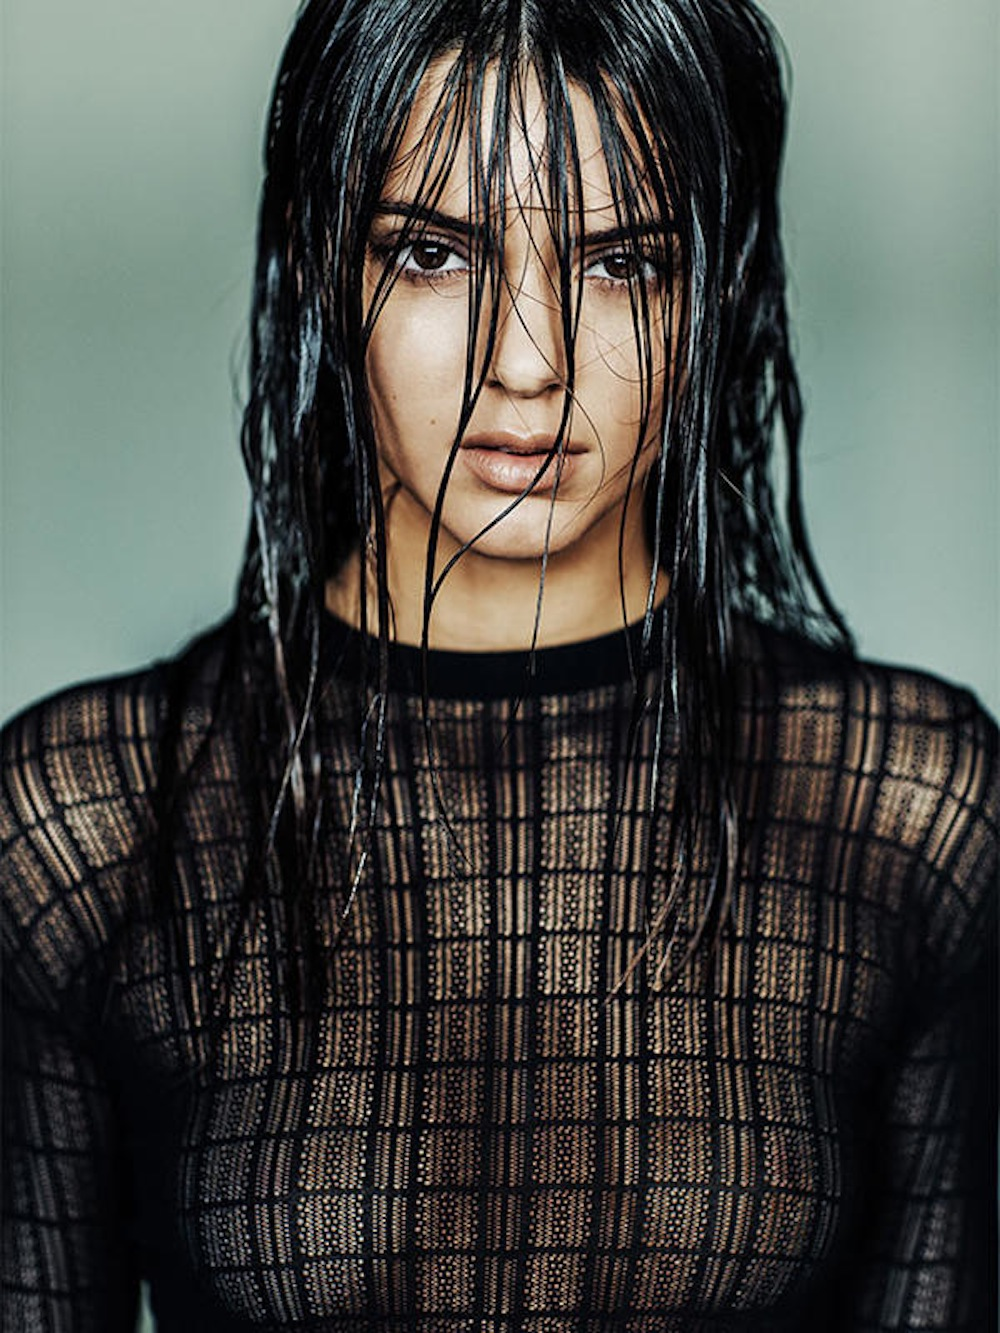 kendall-jenner-angels-russell-james-culture and life-03